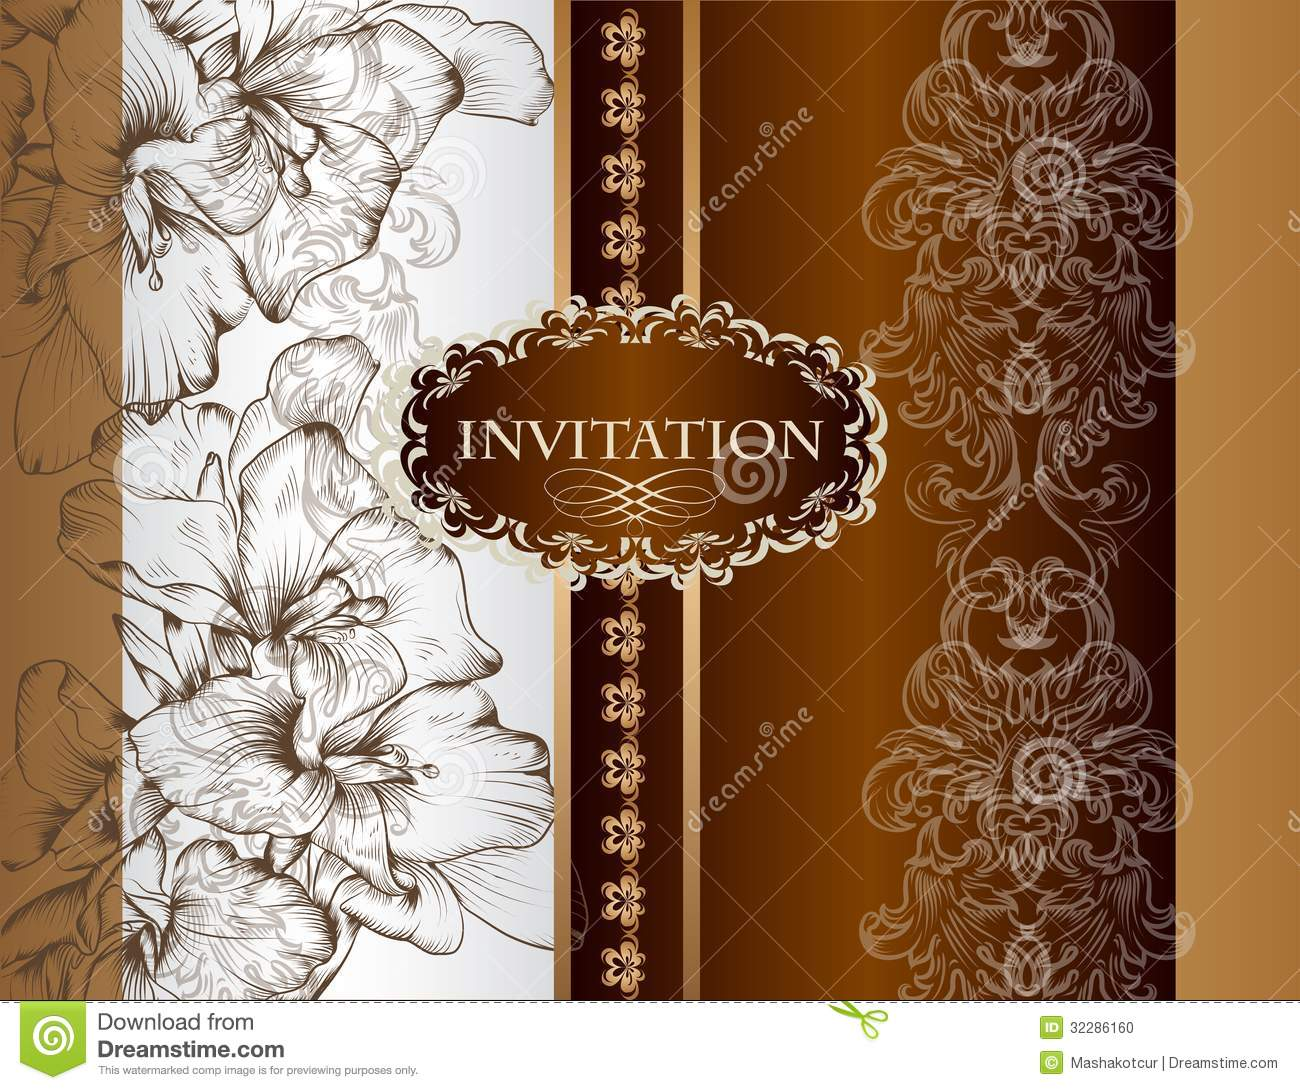 blue wedding invitations royal wedding invitation Blue Wedding Invitations Brilliant Blooms Invitation